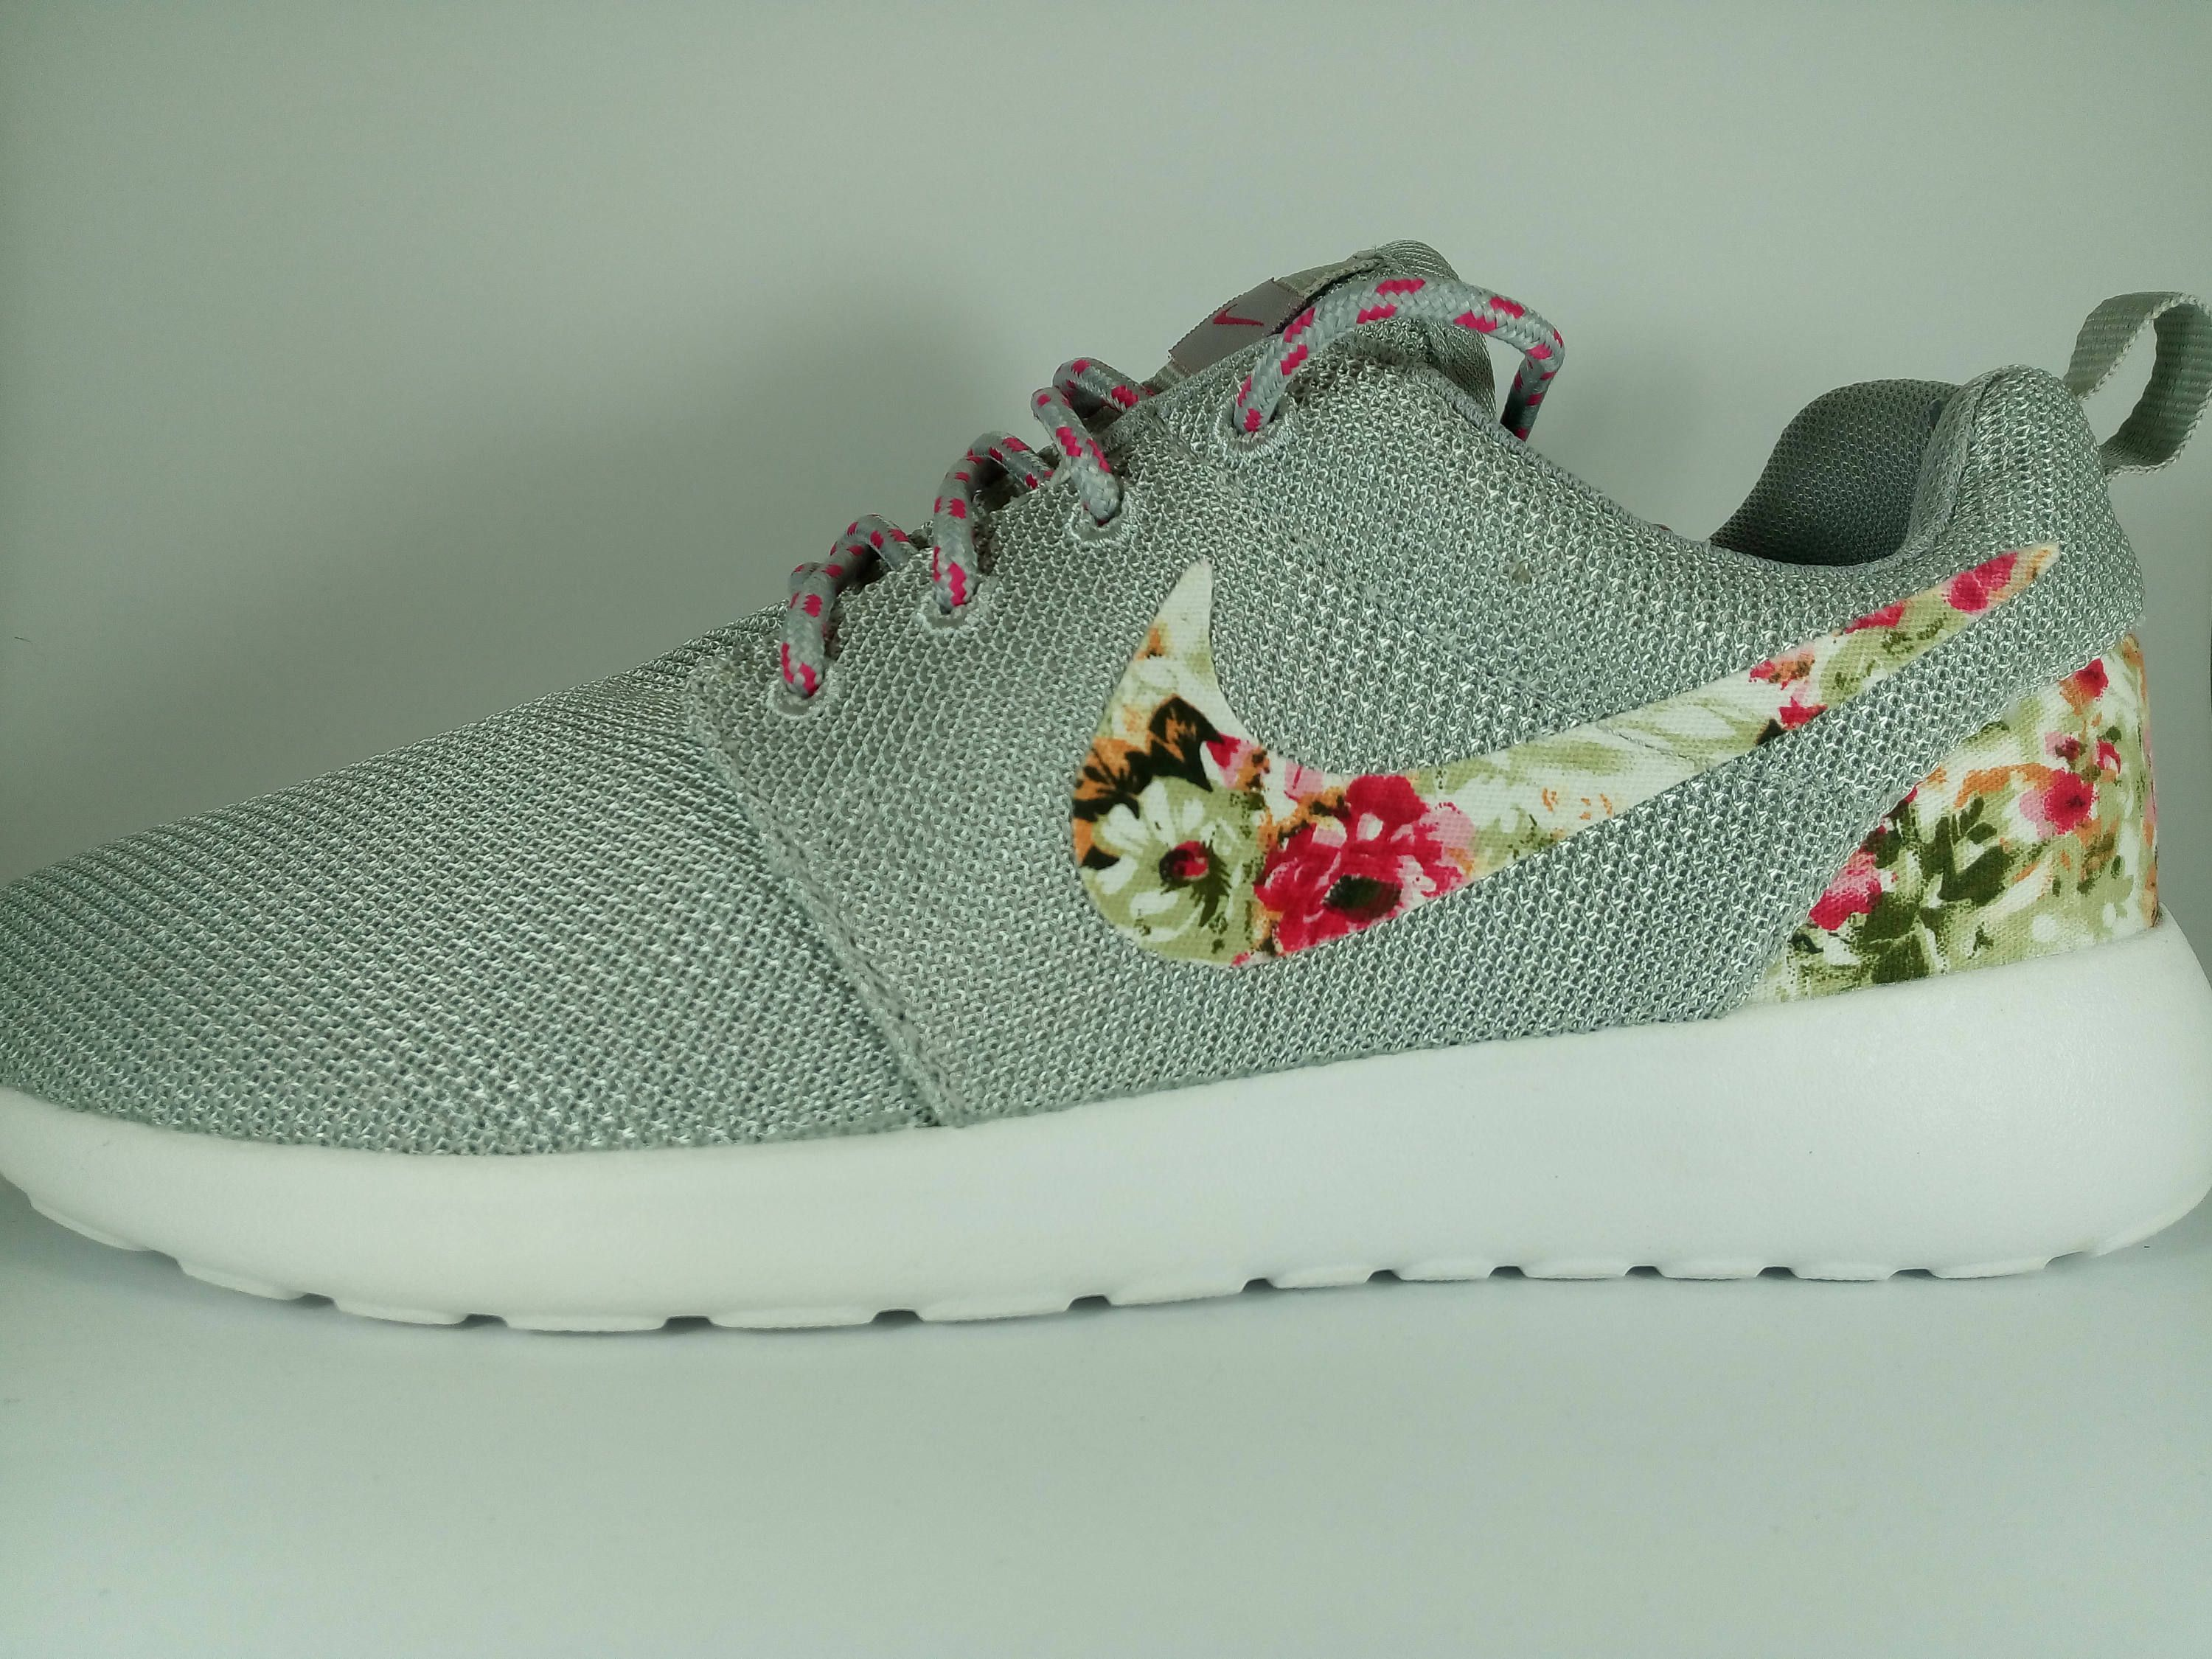 a9df5aa9b79f last pairs custom nike roshe run womens shoes gray color customized with  fabric floral athletic nike shoes with fabric flowers white sole by  JWLSTORE on ...